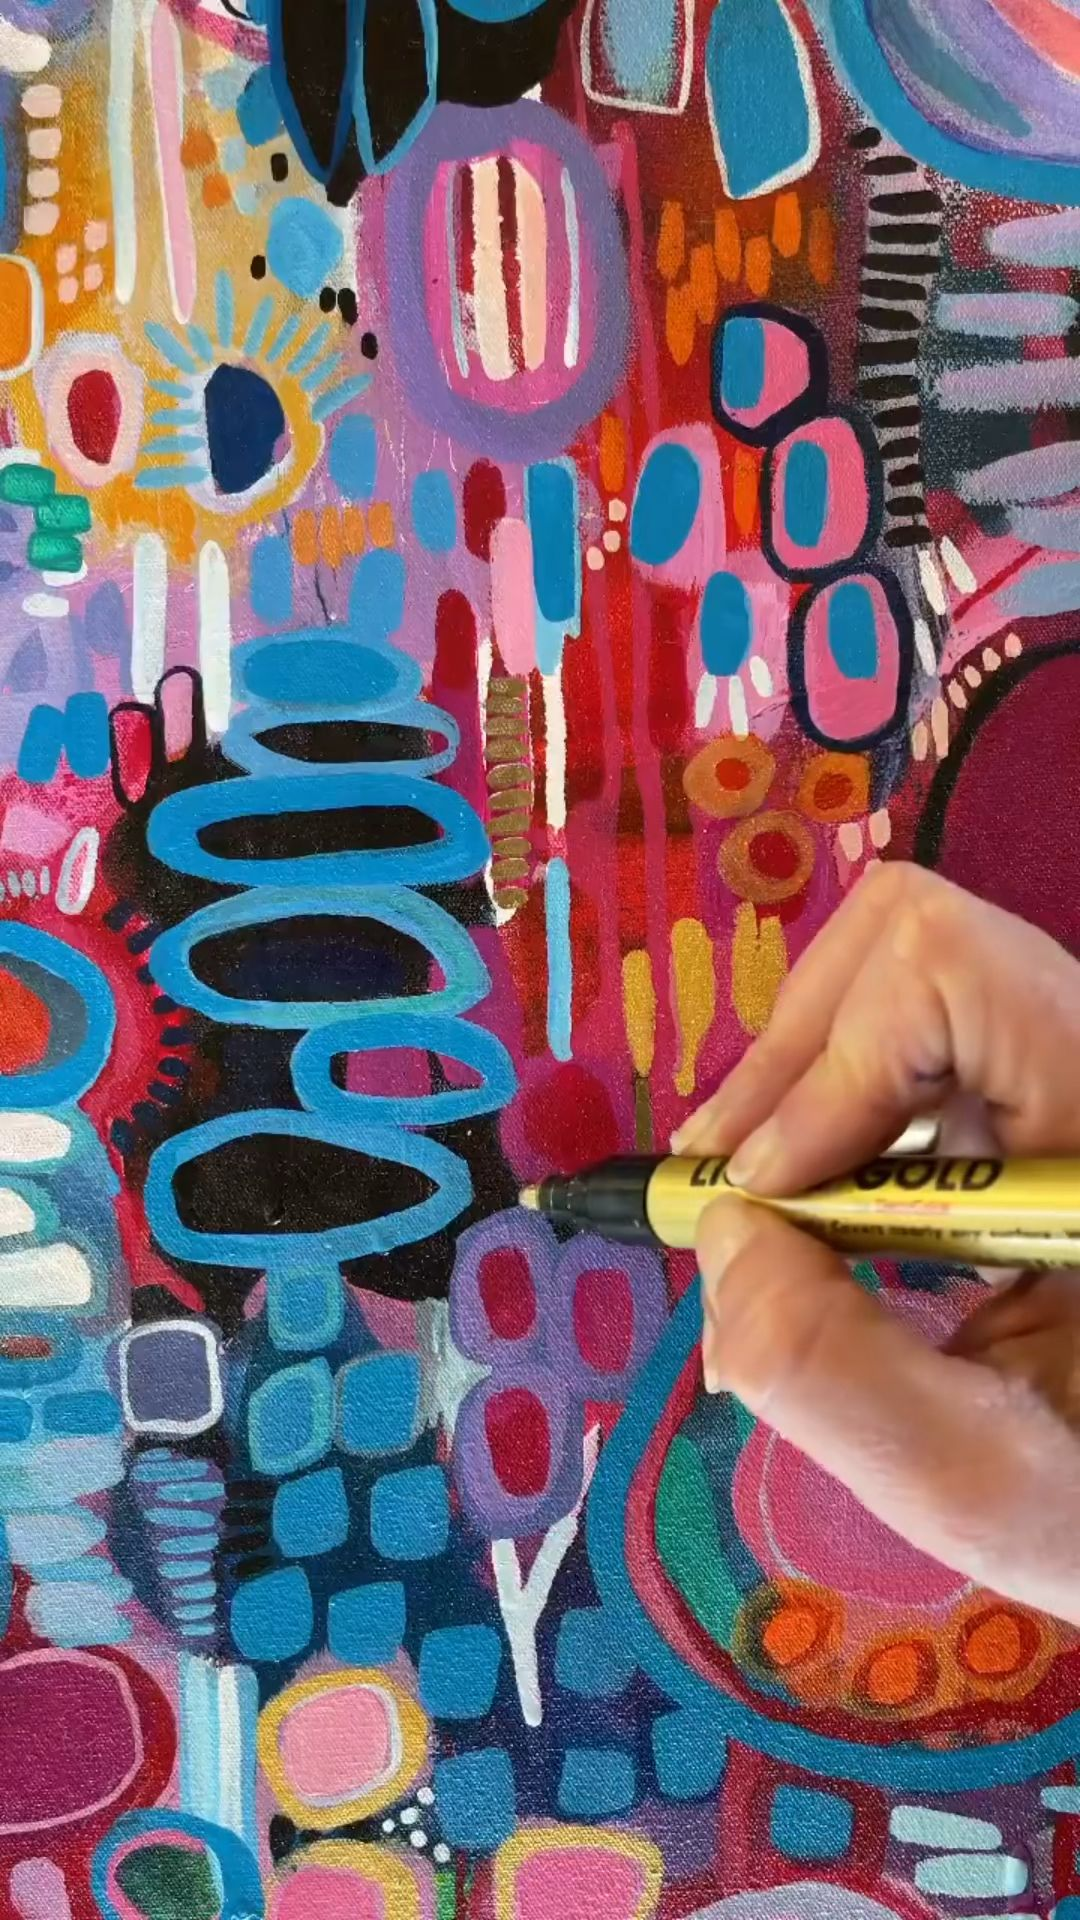 Paint Pens - Great for adding details to your abstract painting!